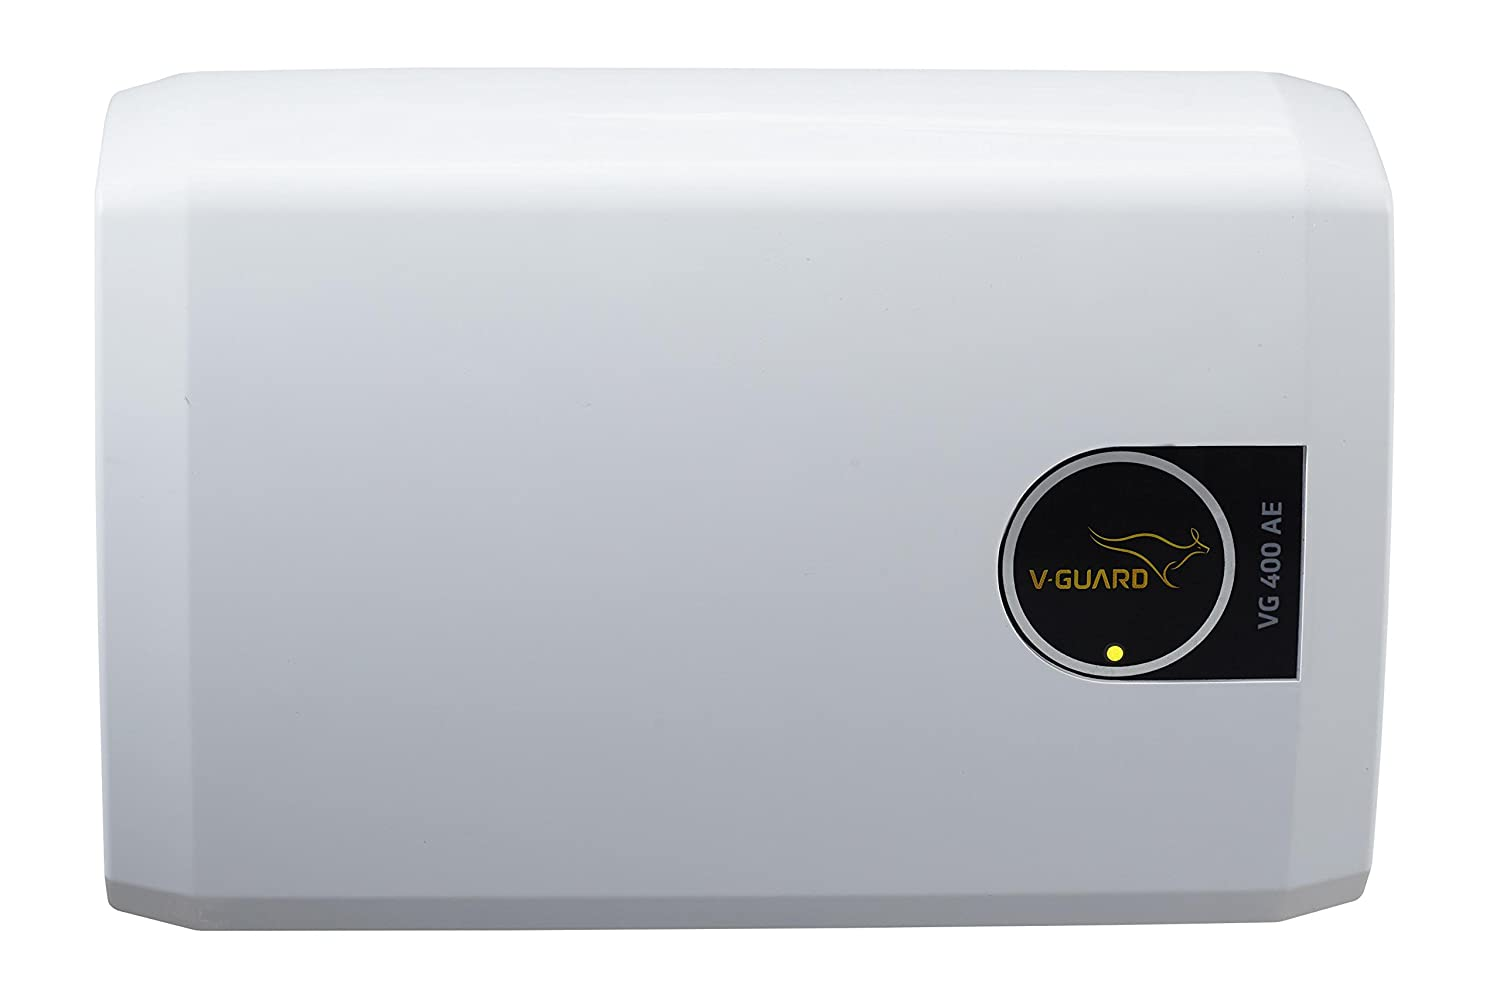 V Guard VG 400 AE 20 2850-Watt AC Stabilizer (White)